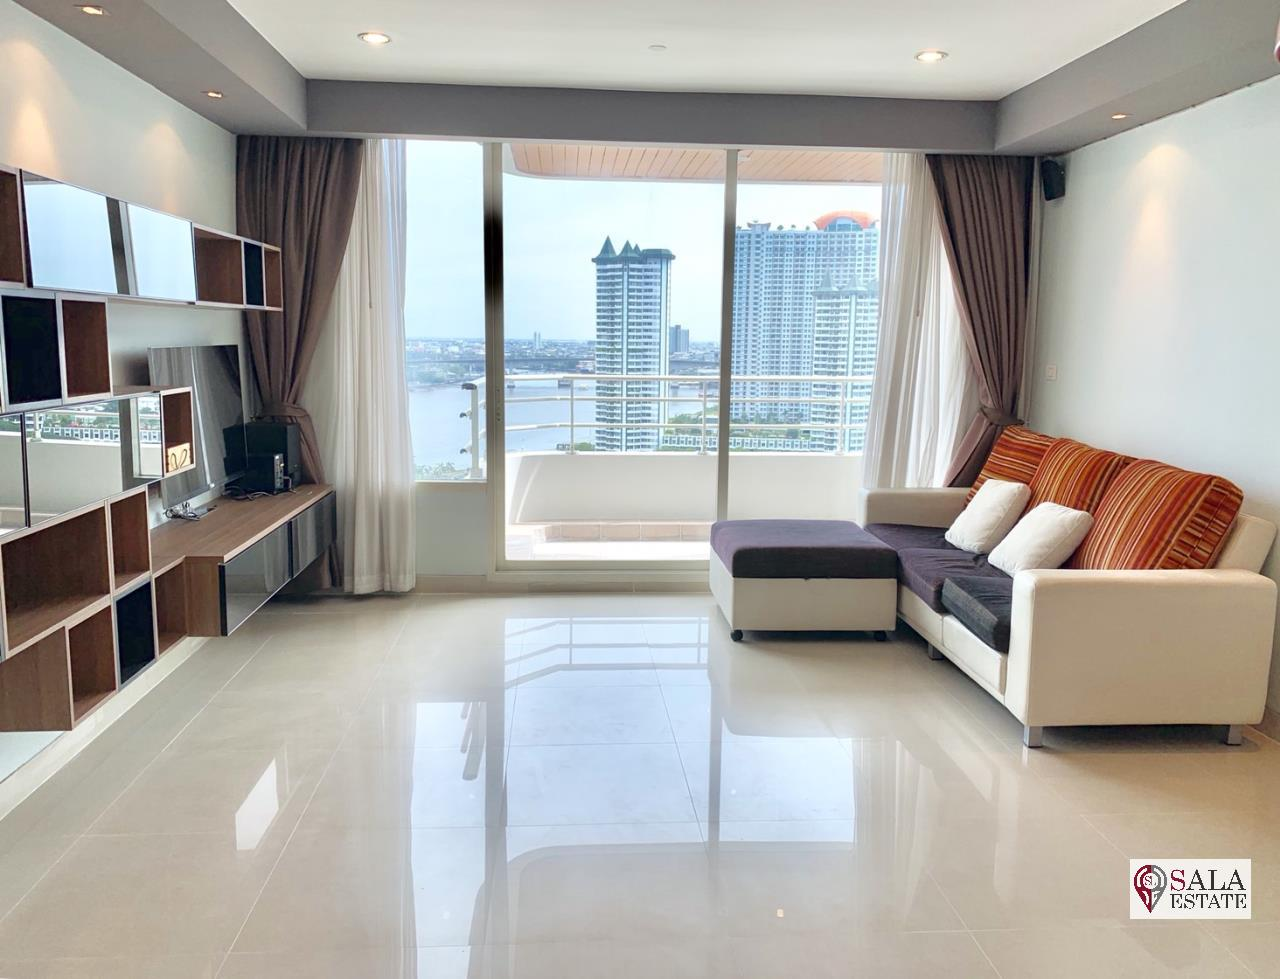 SALA ESTATE Agency's WATERMARK CHAOPHRAYA RIVER – RIVERSIDE-NEAR ICON SIAM,豪华公寓,河景房, 2卧2卫,家具齐全 1